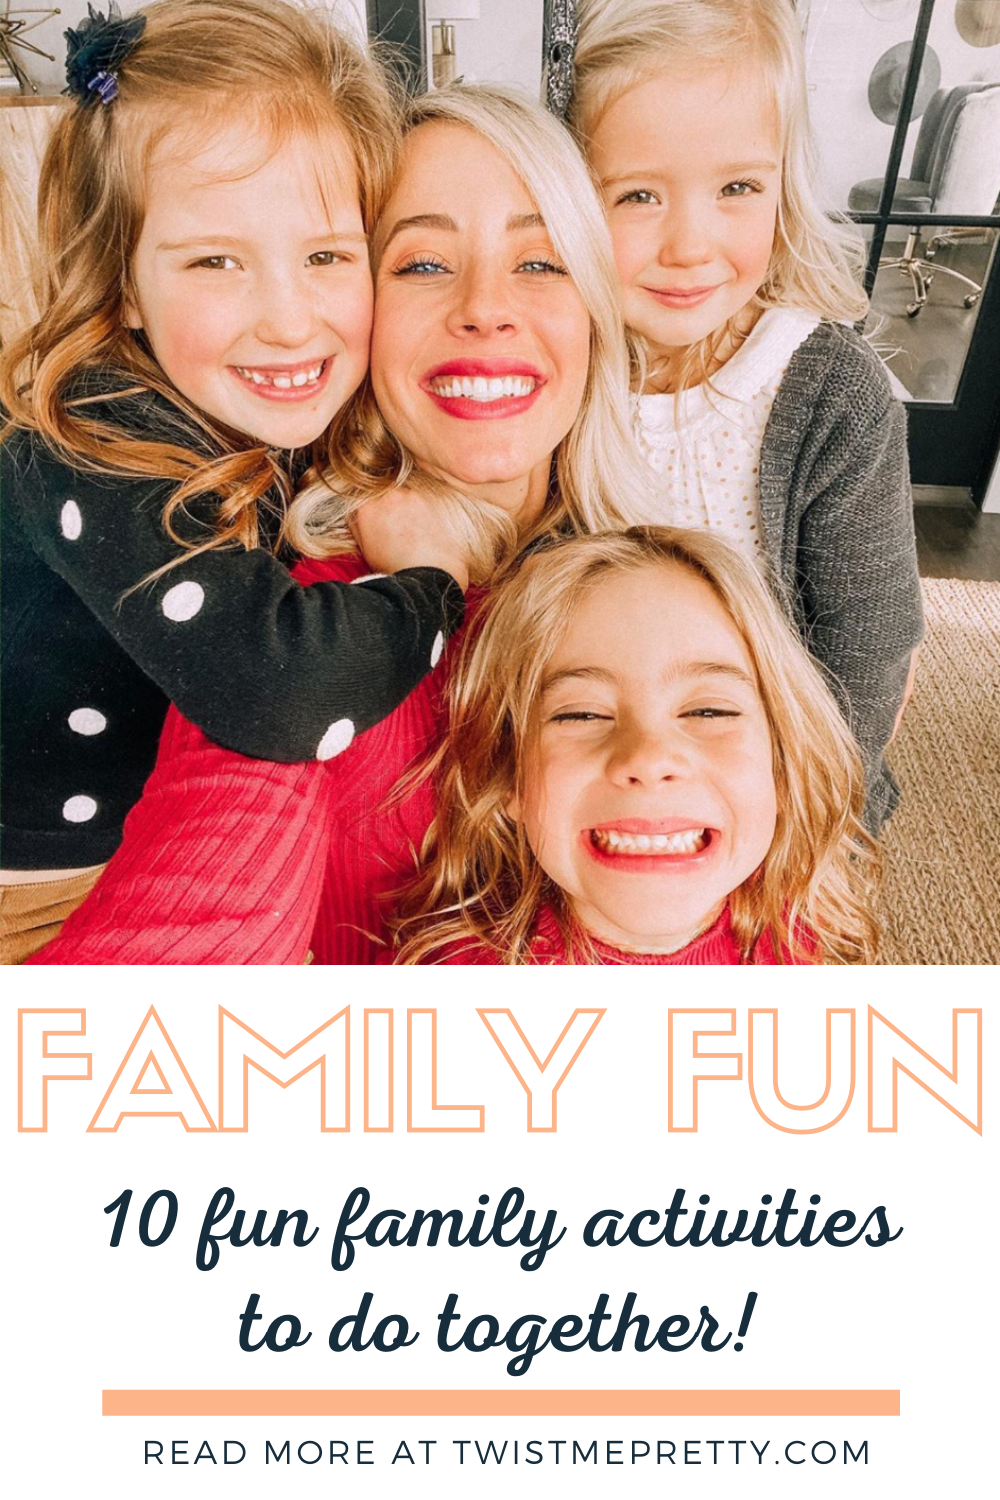 Family Fun- 10 fun family activities to do together! www.twistmepretty.com